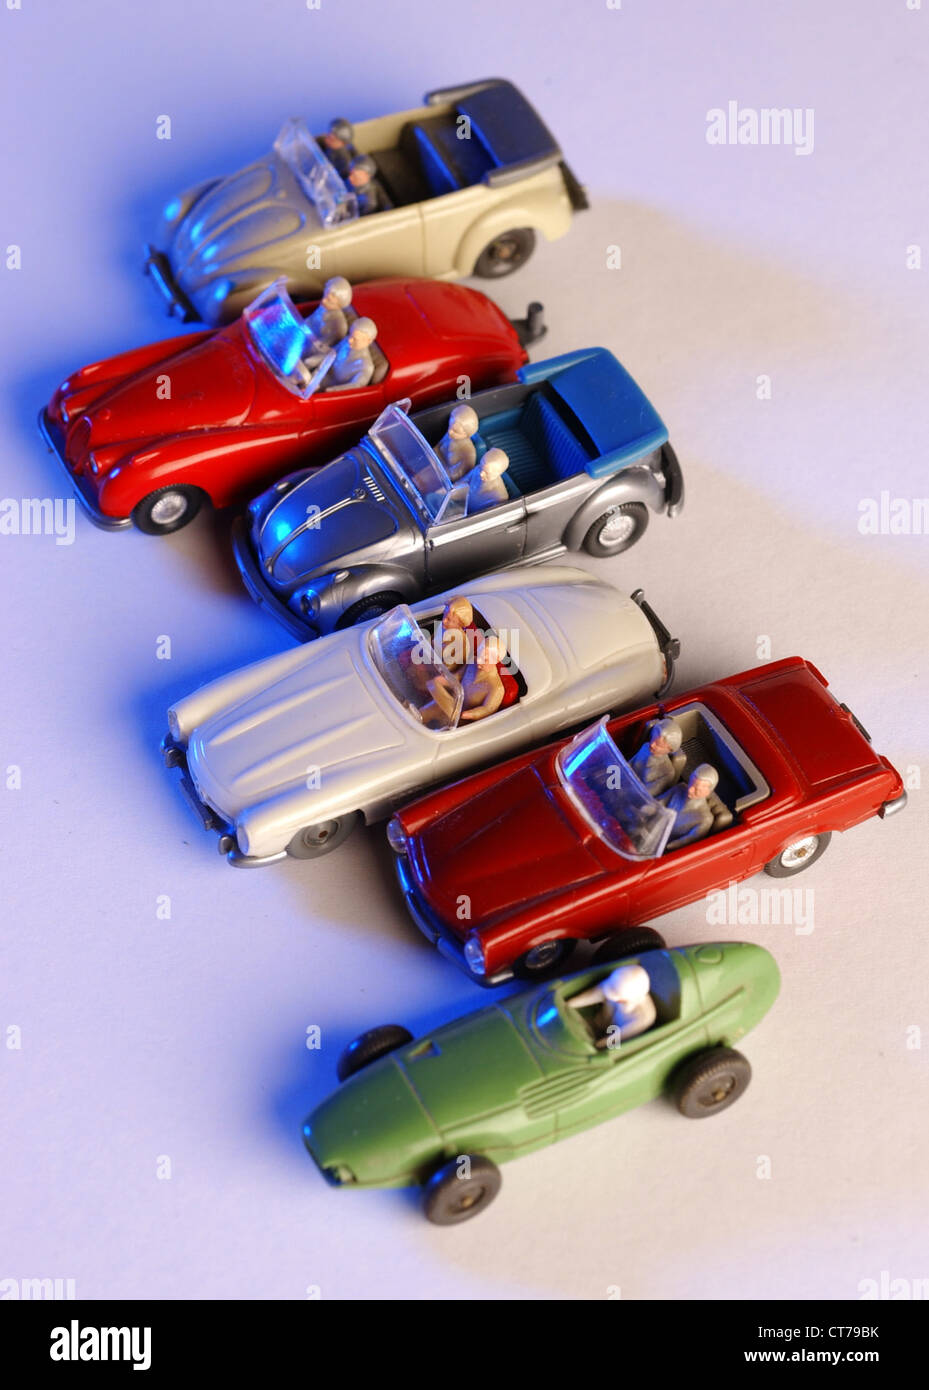 Wiking model cars, convertibles - Stock Image